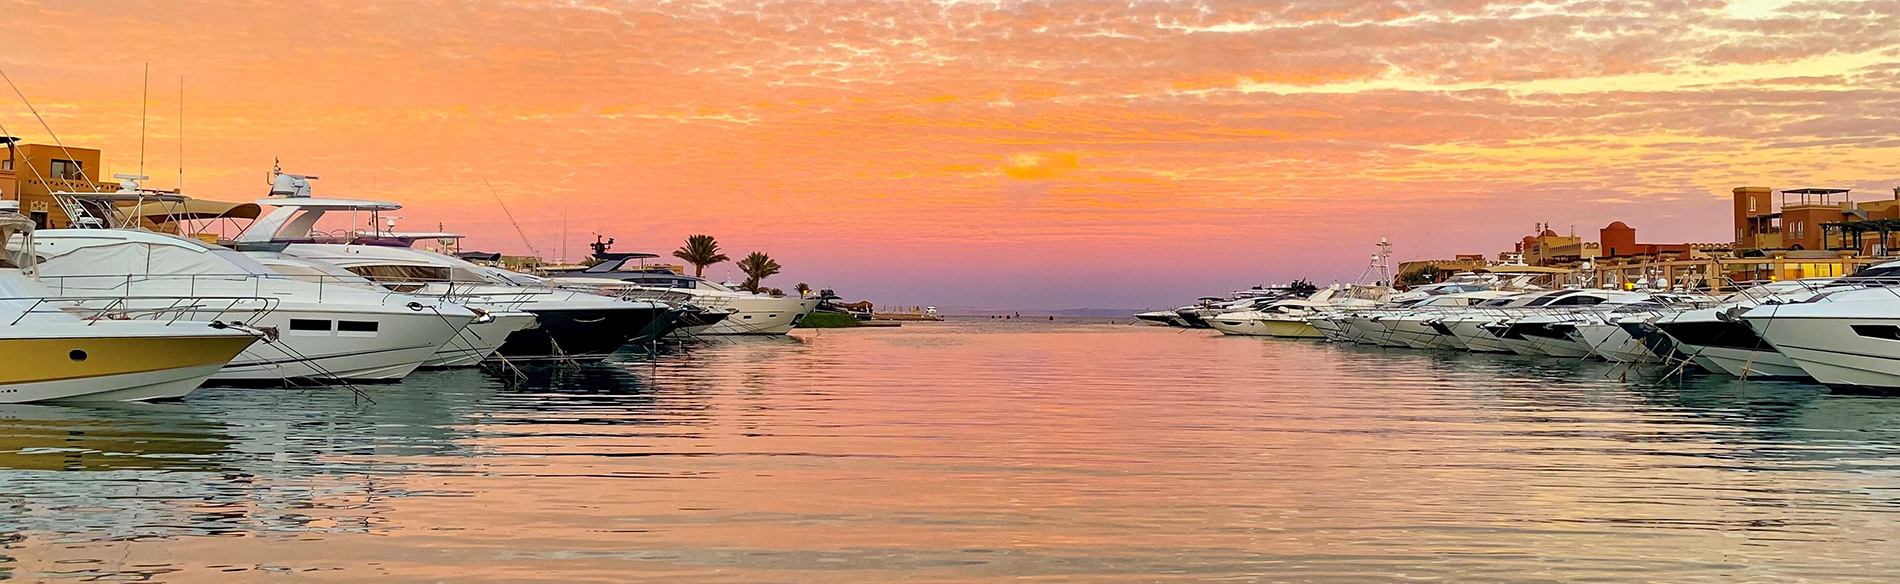 Abu Tig Marina El Gouna Red sea Hotels - beautiful sunrise